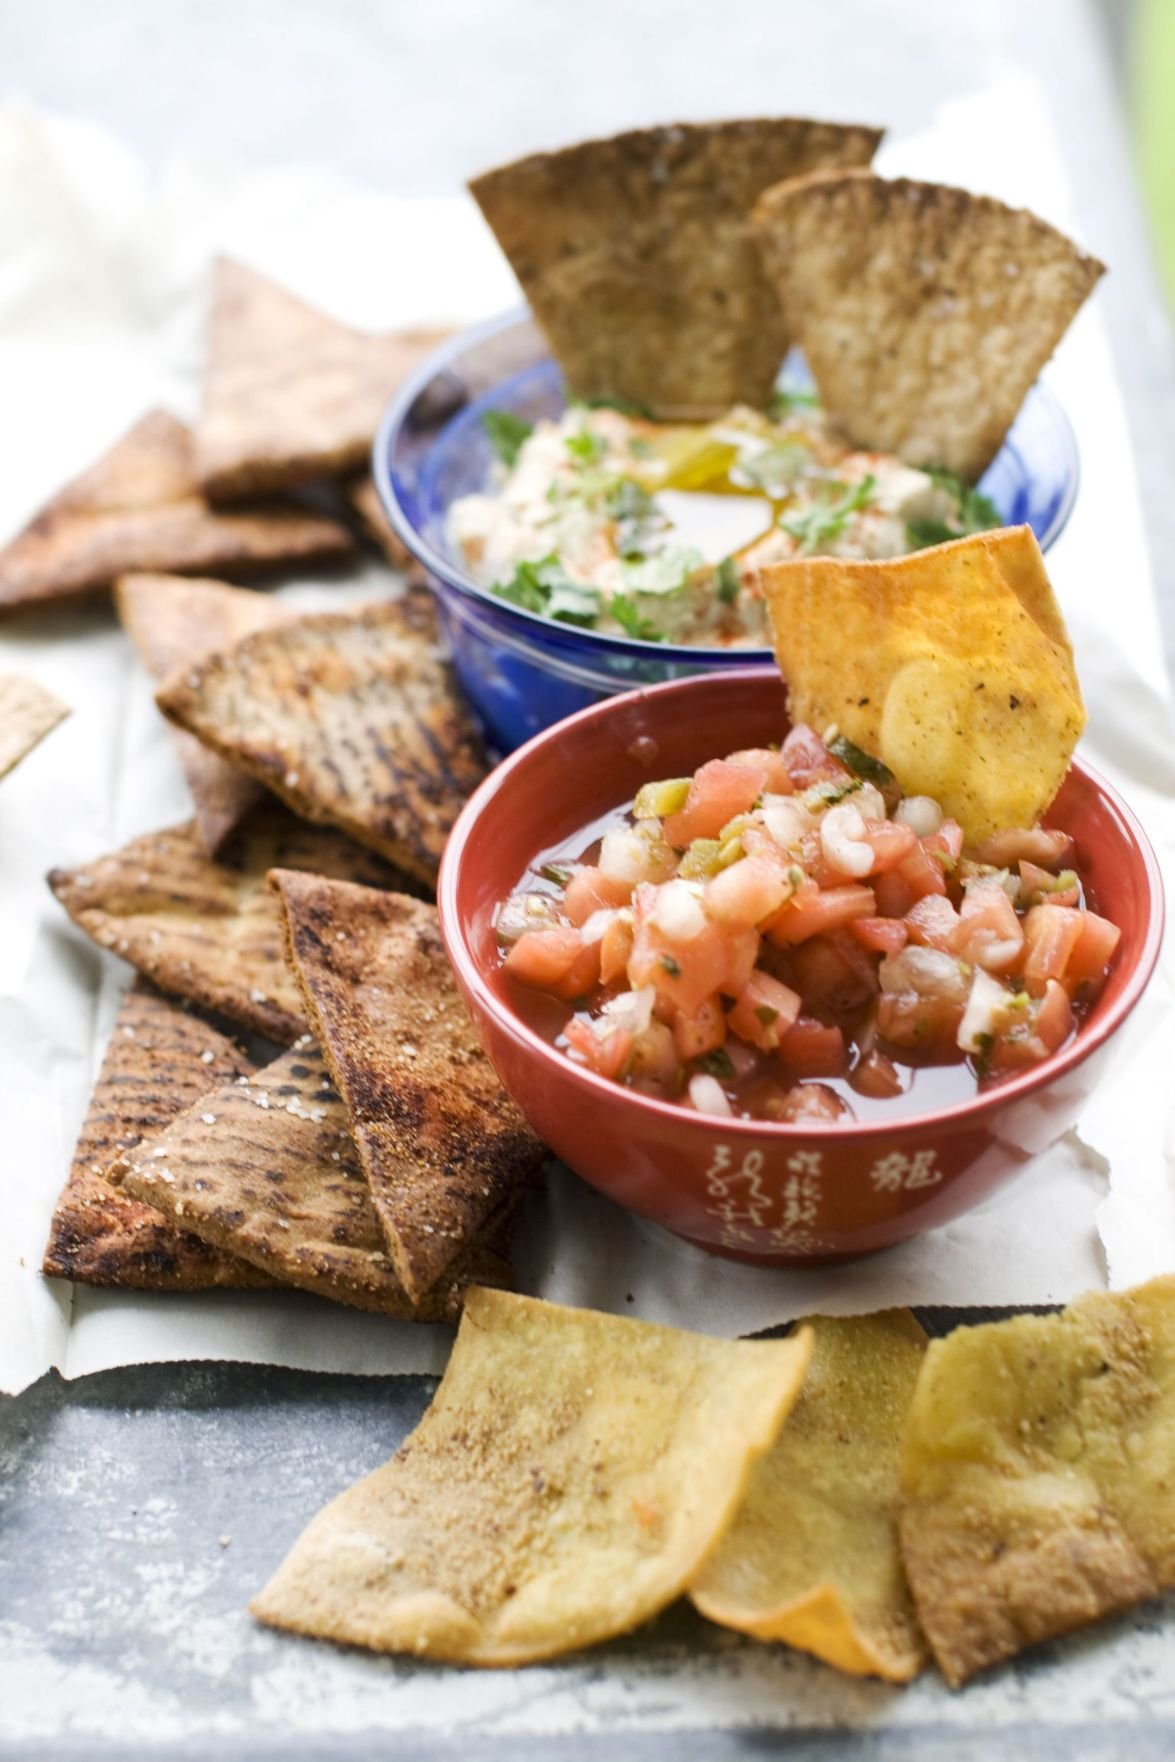 Tortilla chips are easy to make at home